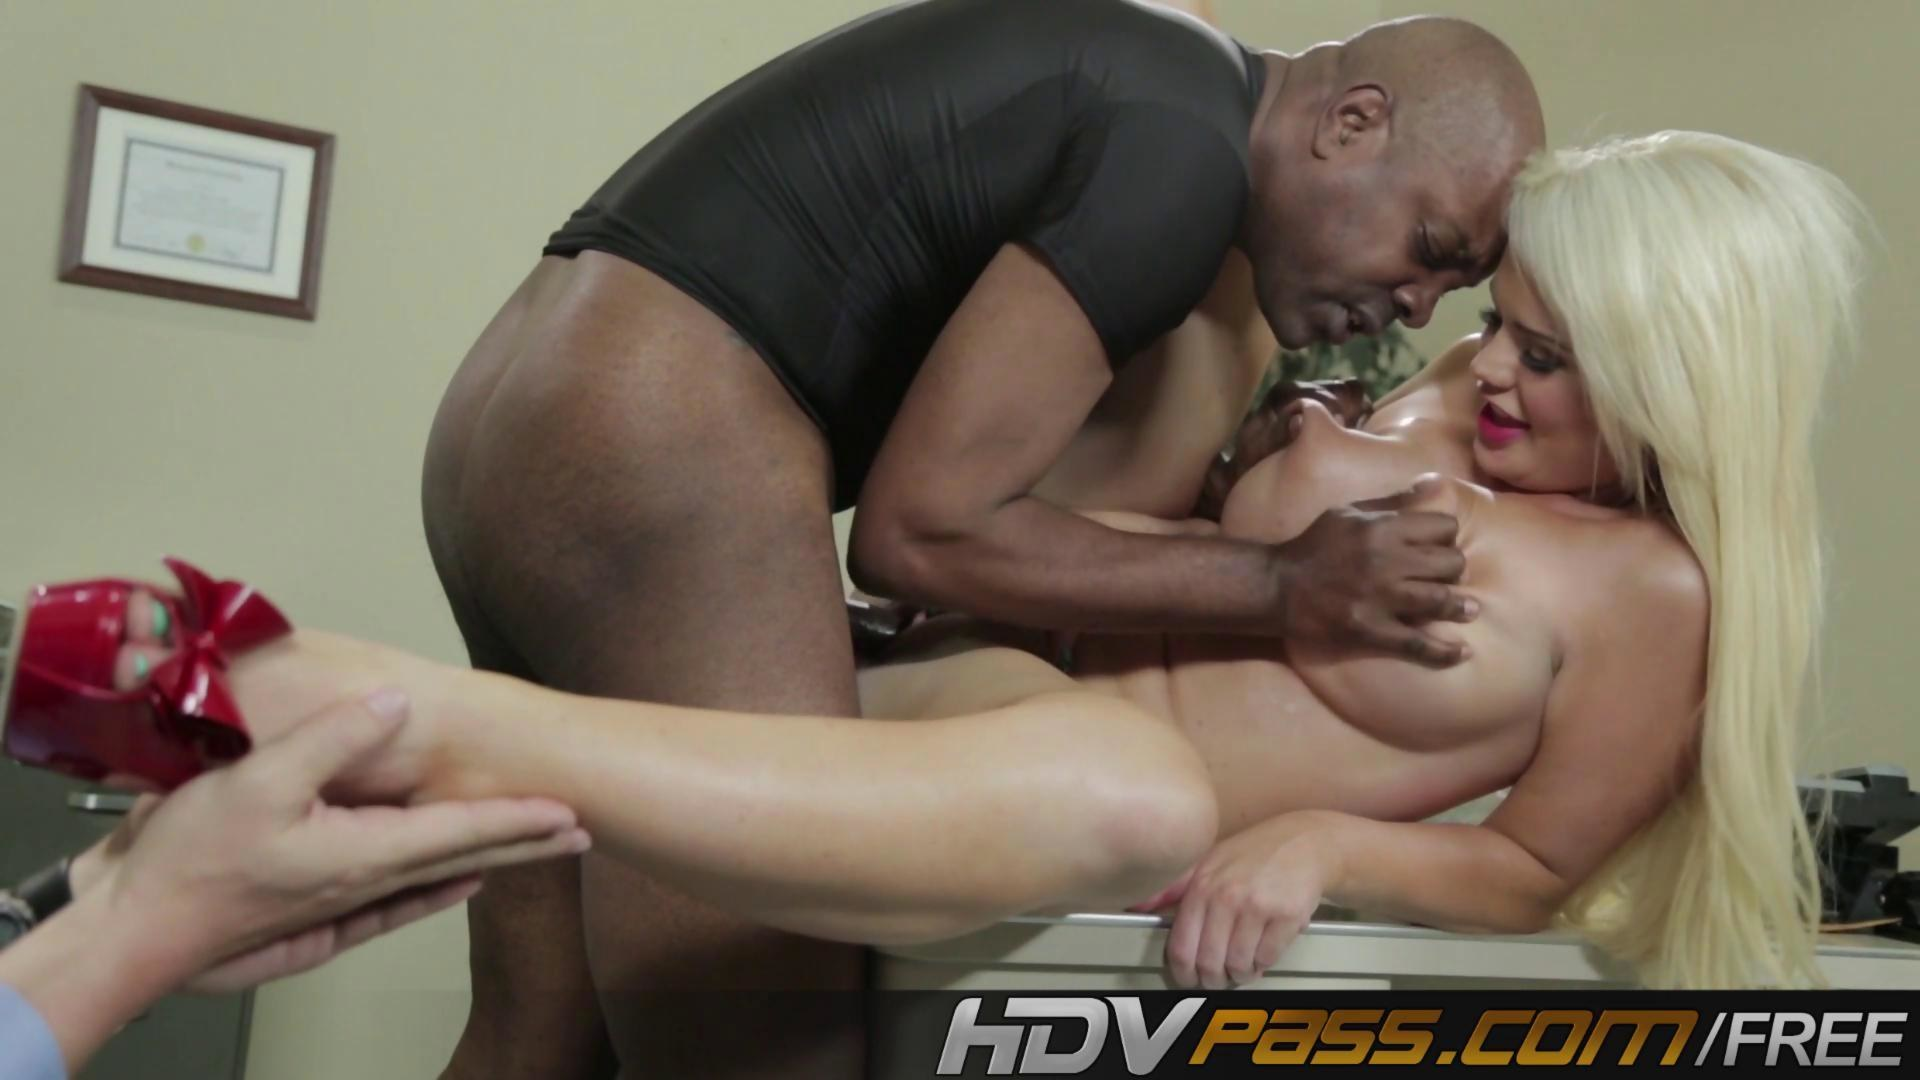 Hdvpass dirty babes naudia and darryl 3